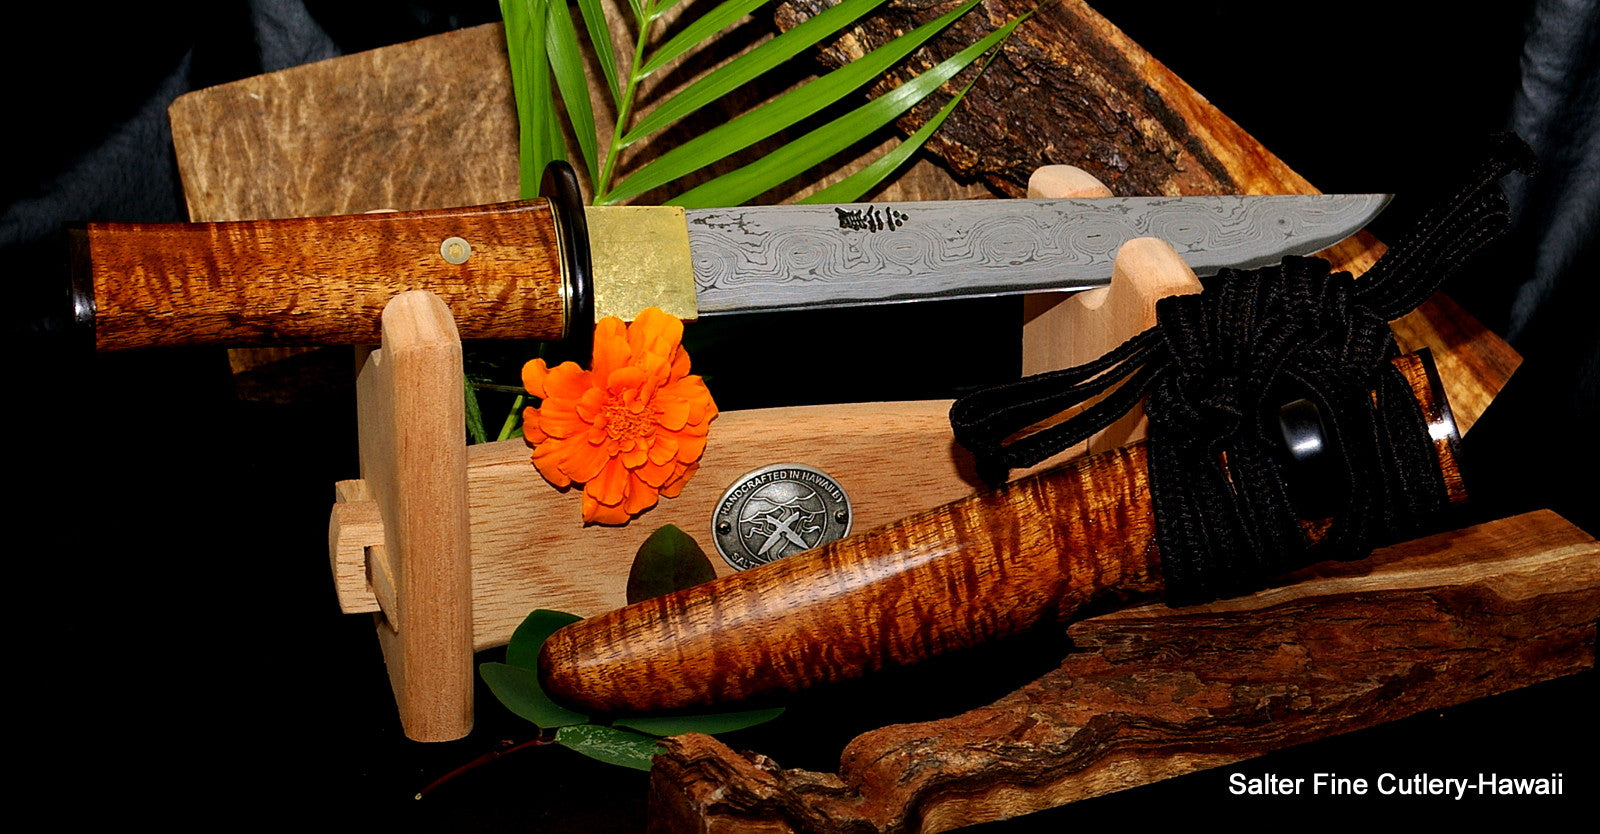 210mm Collectible Hunting with Japanese style handle, sheath and work stand Salter Fine Cutlery